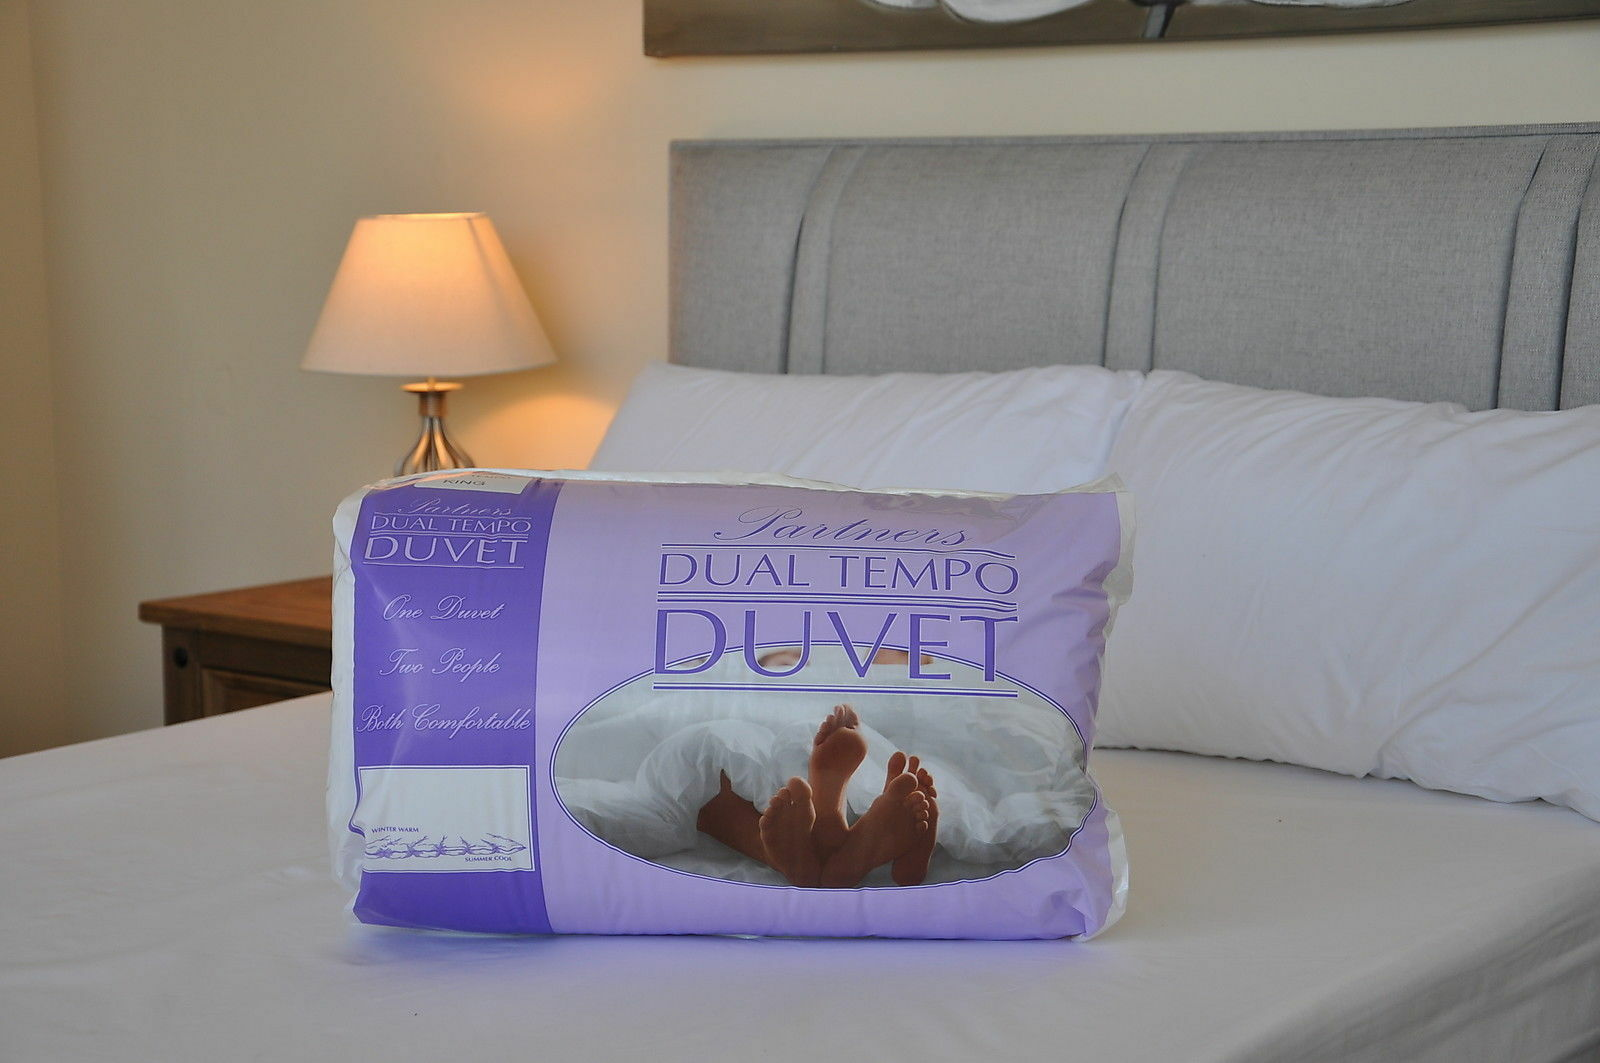 Premium Quality His And Hers Partners  Duvet 4.5 and 9 Tog  Dual Tempo Duvet